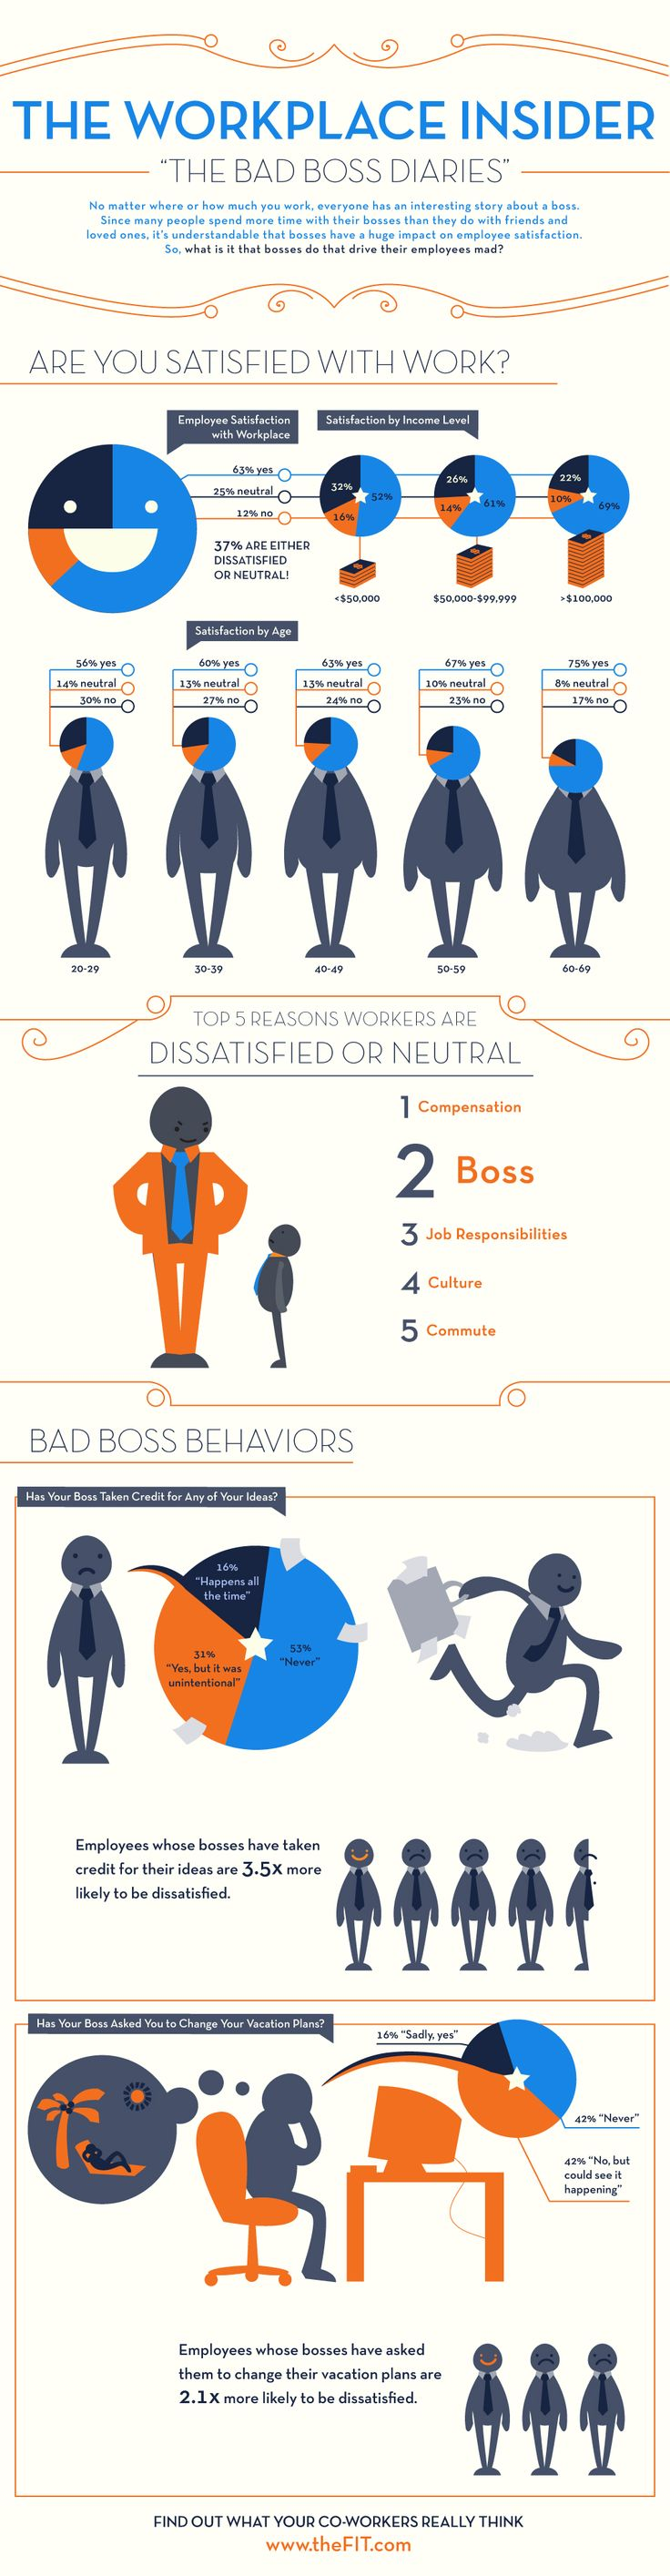 best images about best career infographics top 5 reasons for dissatisfied workers infographic via comerecommended careertips